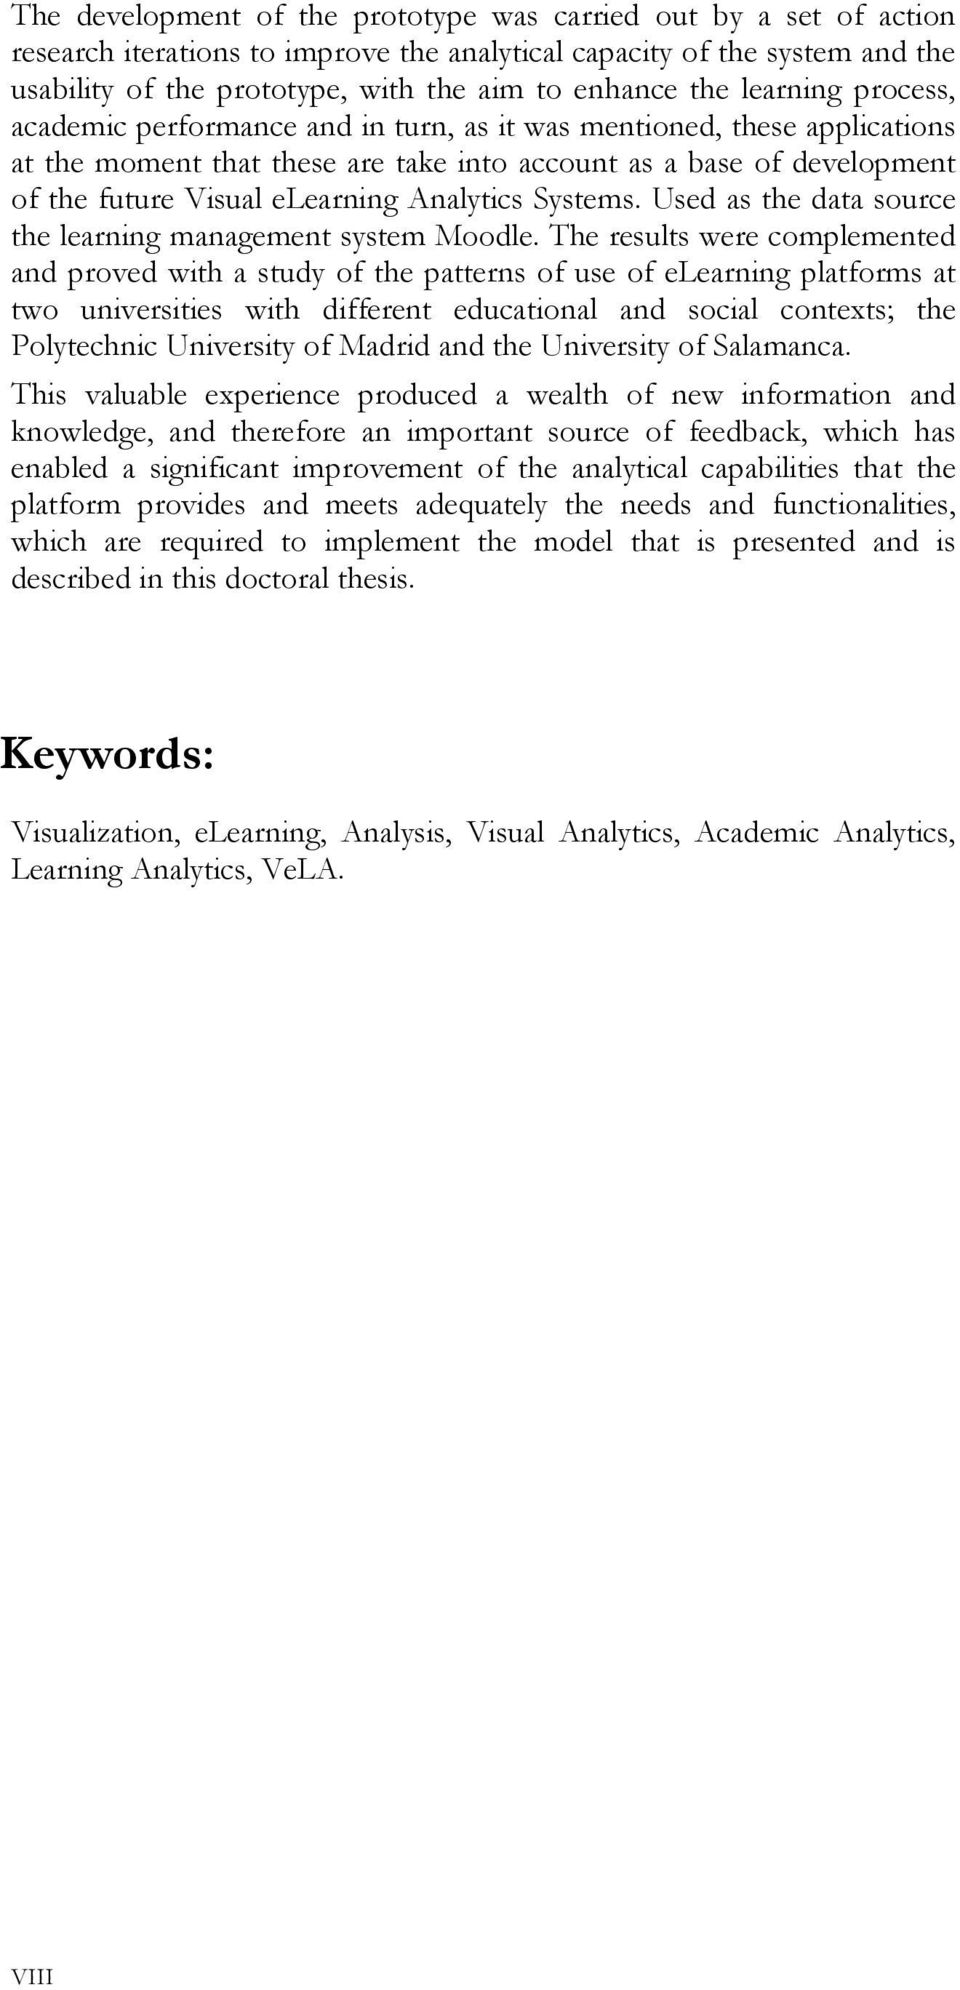 Analytics Systems. Used as the data source the learning management system Moodle.